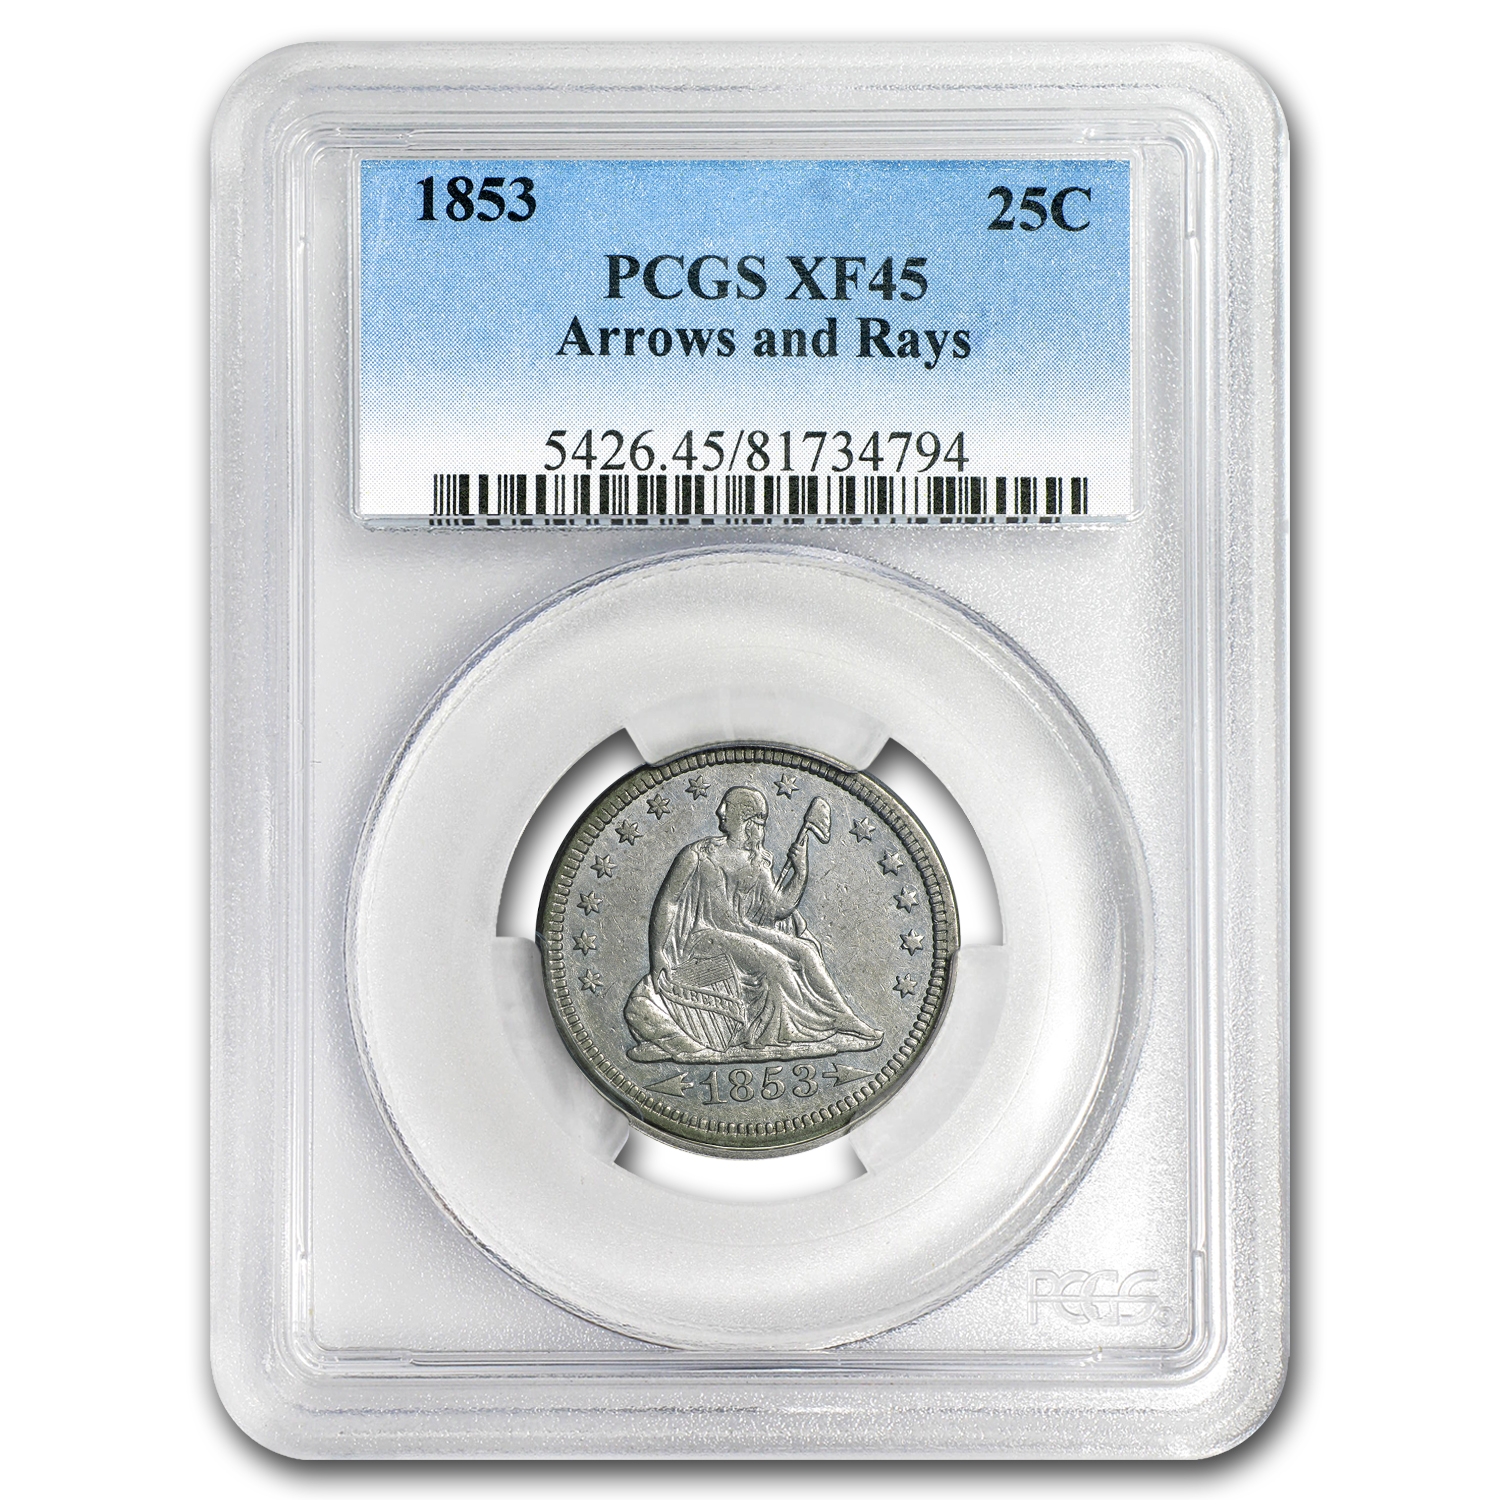 1853 Liberty Seated Quarter Arrows and Rays XF-45 PCGS